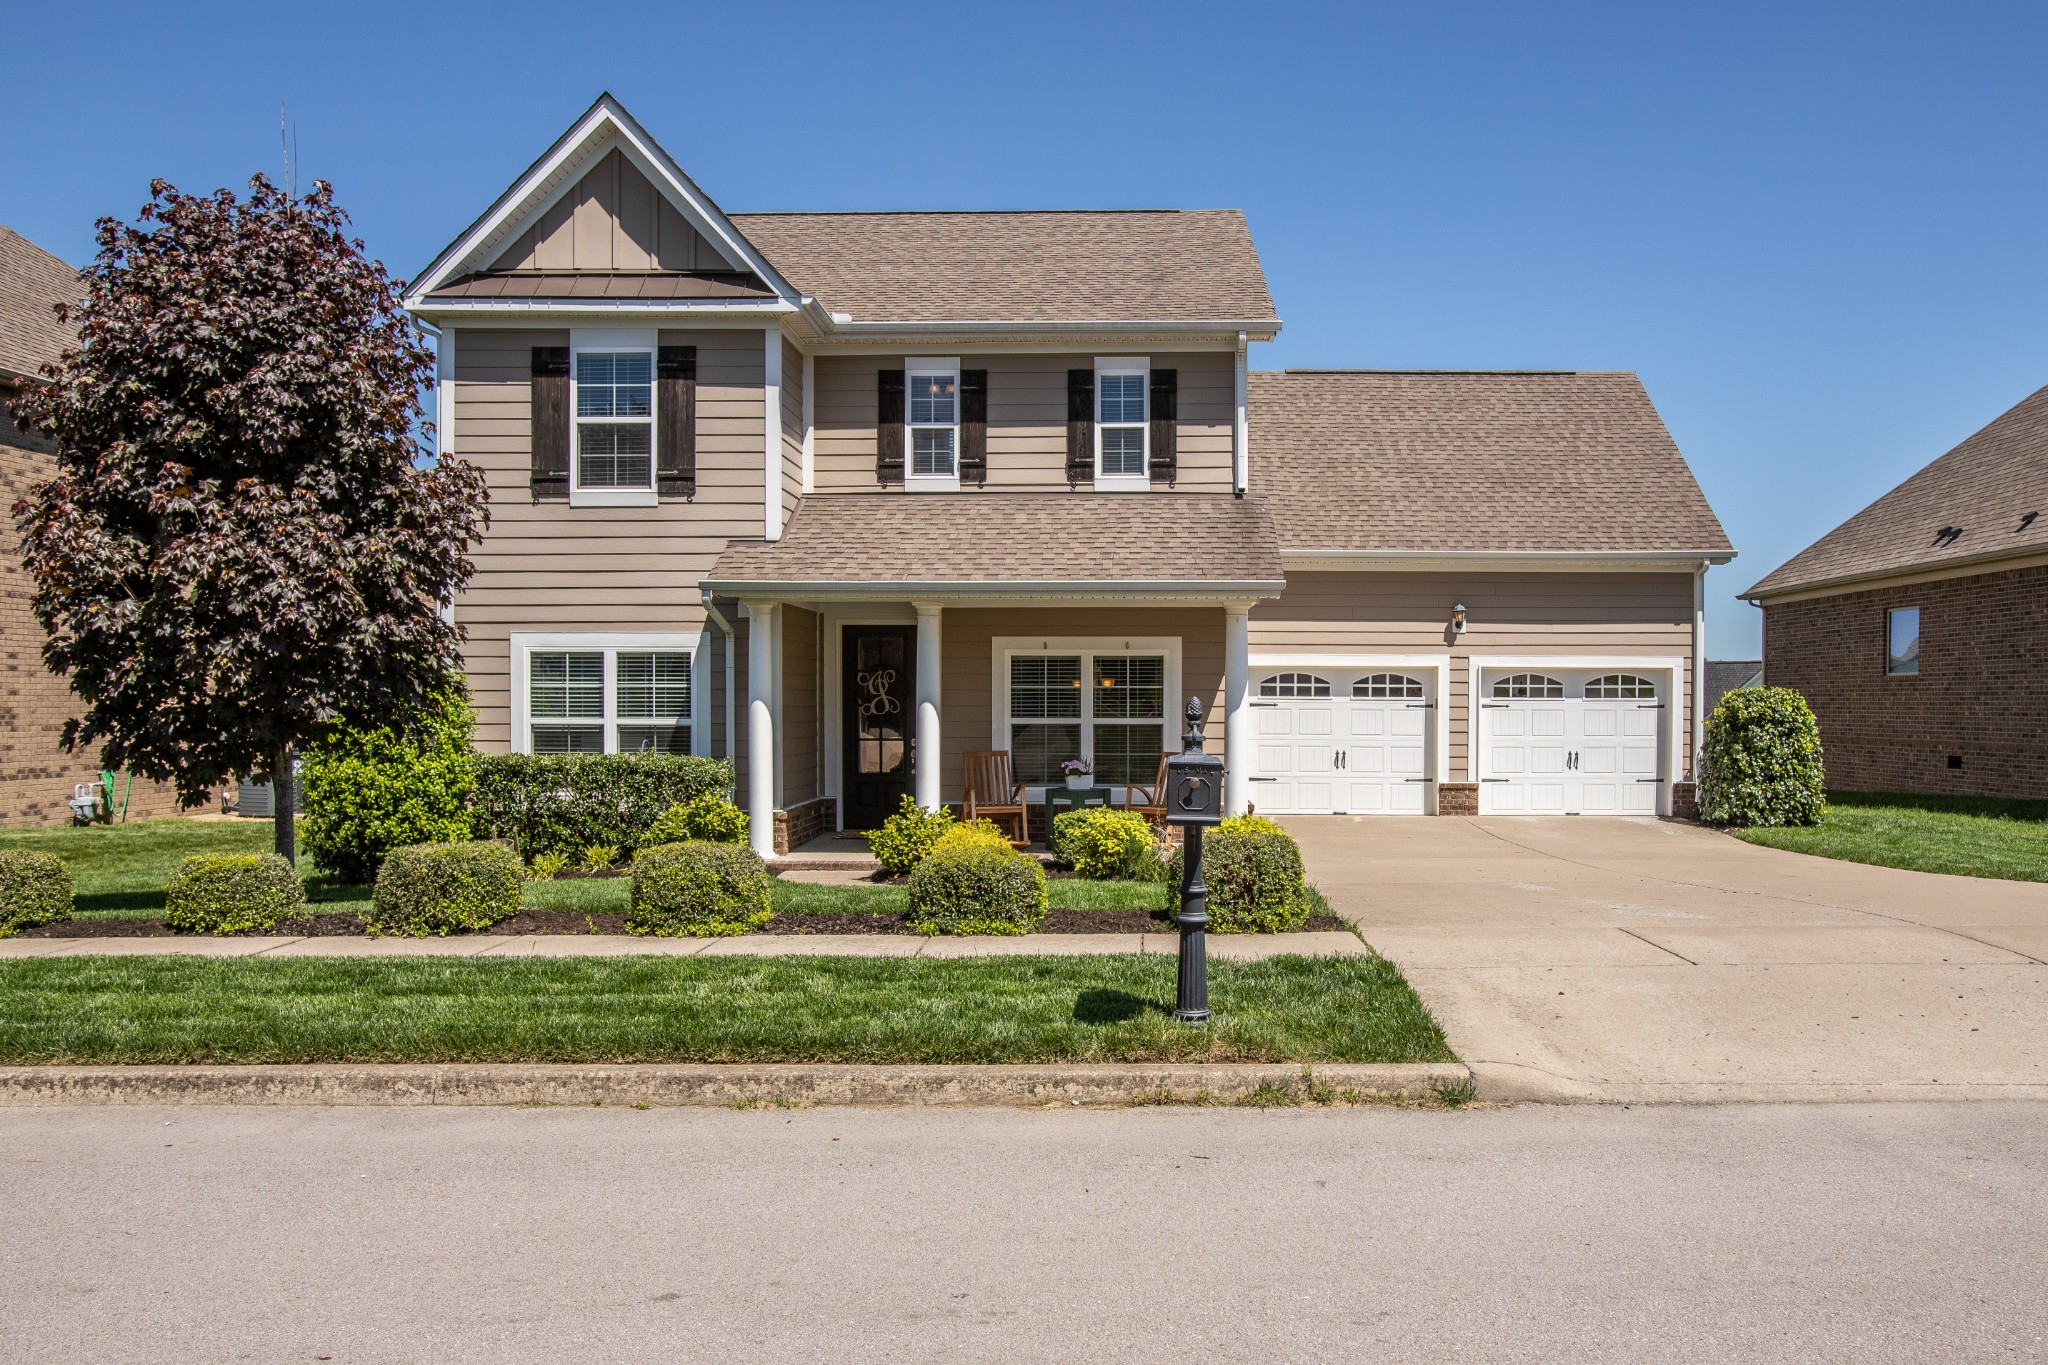 Entertainer's dream home! Wide open living areas, tons of unique features including shiplap, beams, and board & batten walls. Fresh paint and new landscaping make this home move in ready! Oversized secondary bedrooms mean the whole family will love this one! Come enjoy your summer on this expansive front porch just a few houses from the pool and playground.